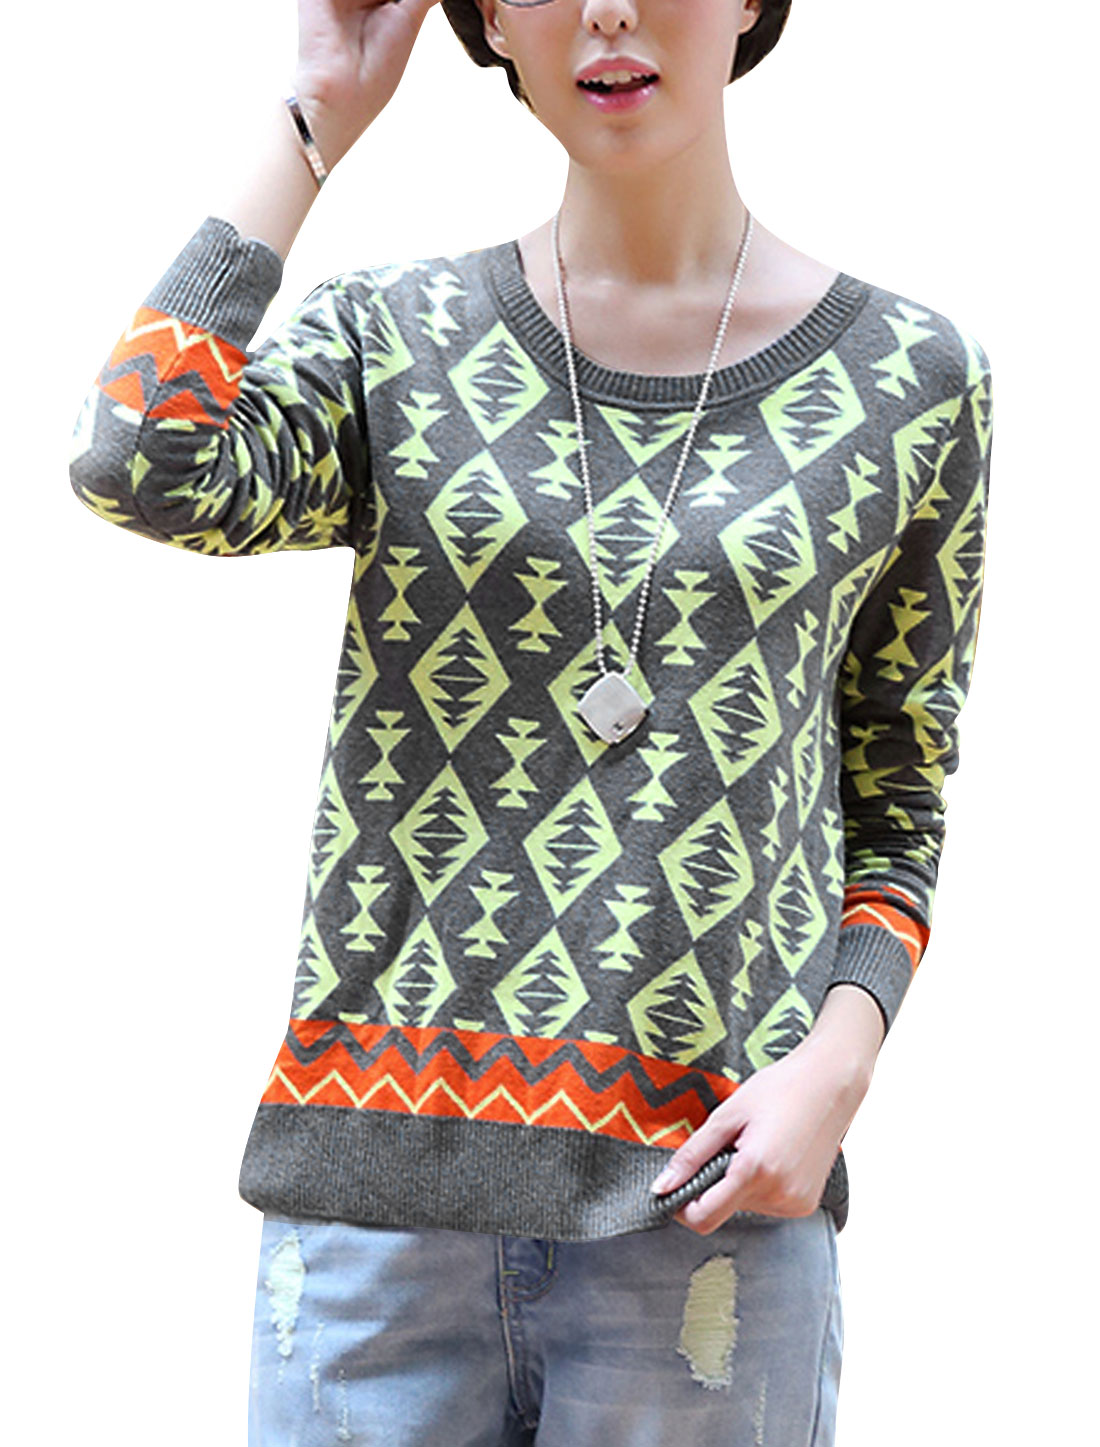 Lady Slipover Geometric Zig-Zag Pattern Long Sleeve Sweater Gray S